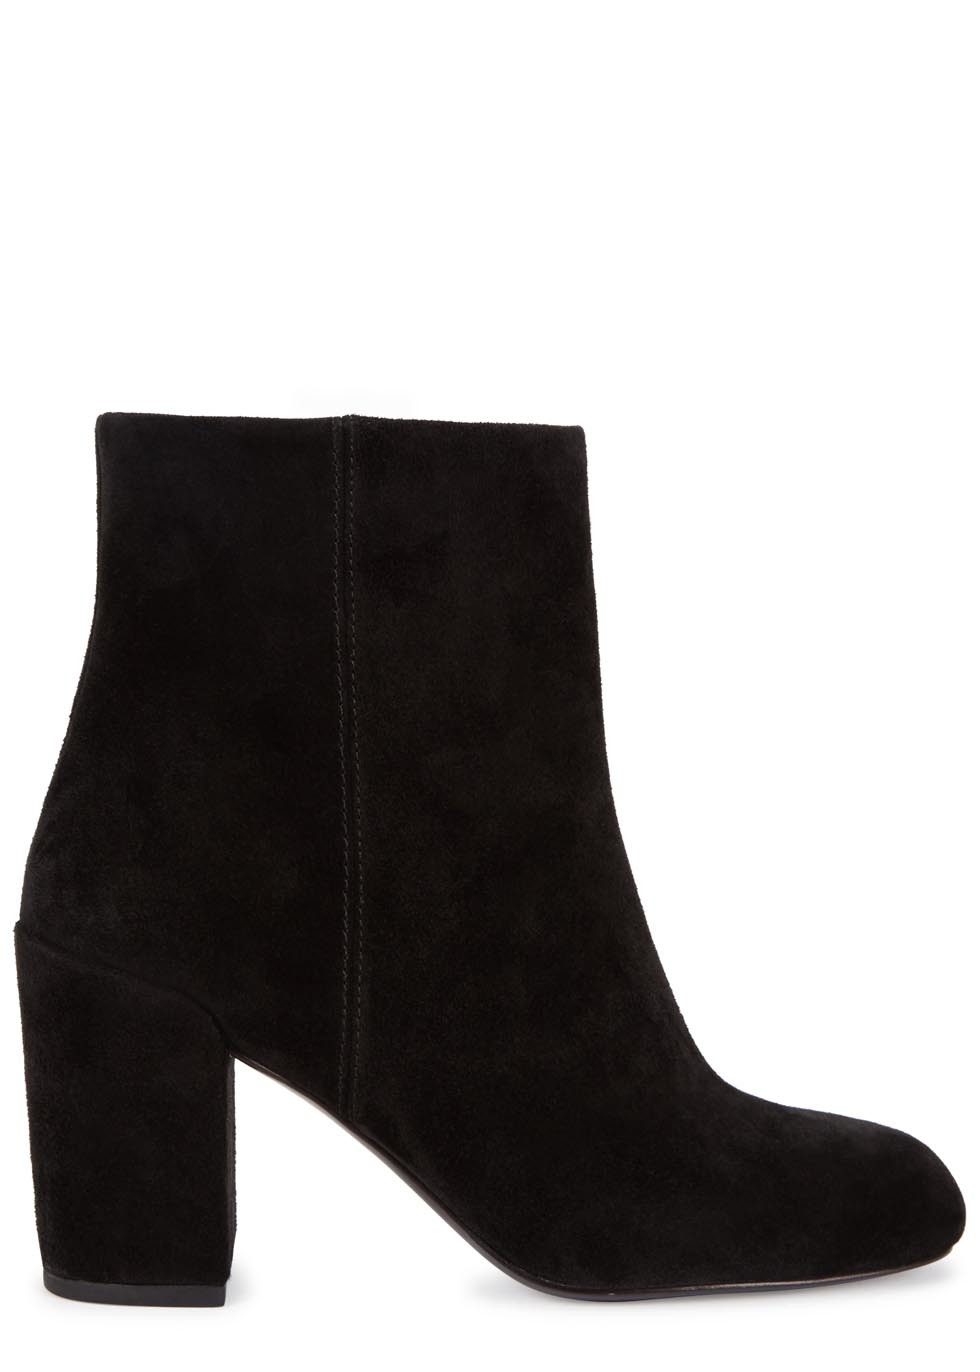 Hana Black Suede Ankle Boots - predominant colour: black; occasions: casual, creative work; material: suede; heel height: high; heel: block; toe: round toe; boot length: ankle boot; style: standard; finish: plain; pattern: plain; season: a/w 2015; wardrobe: highlight